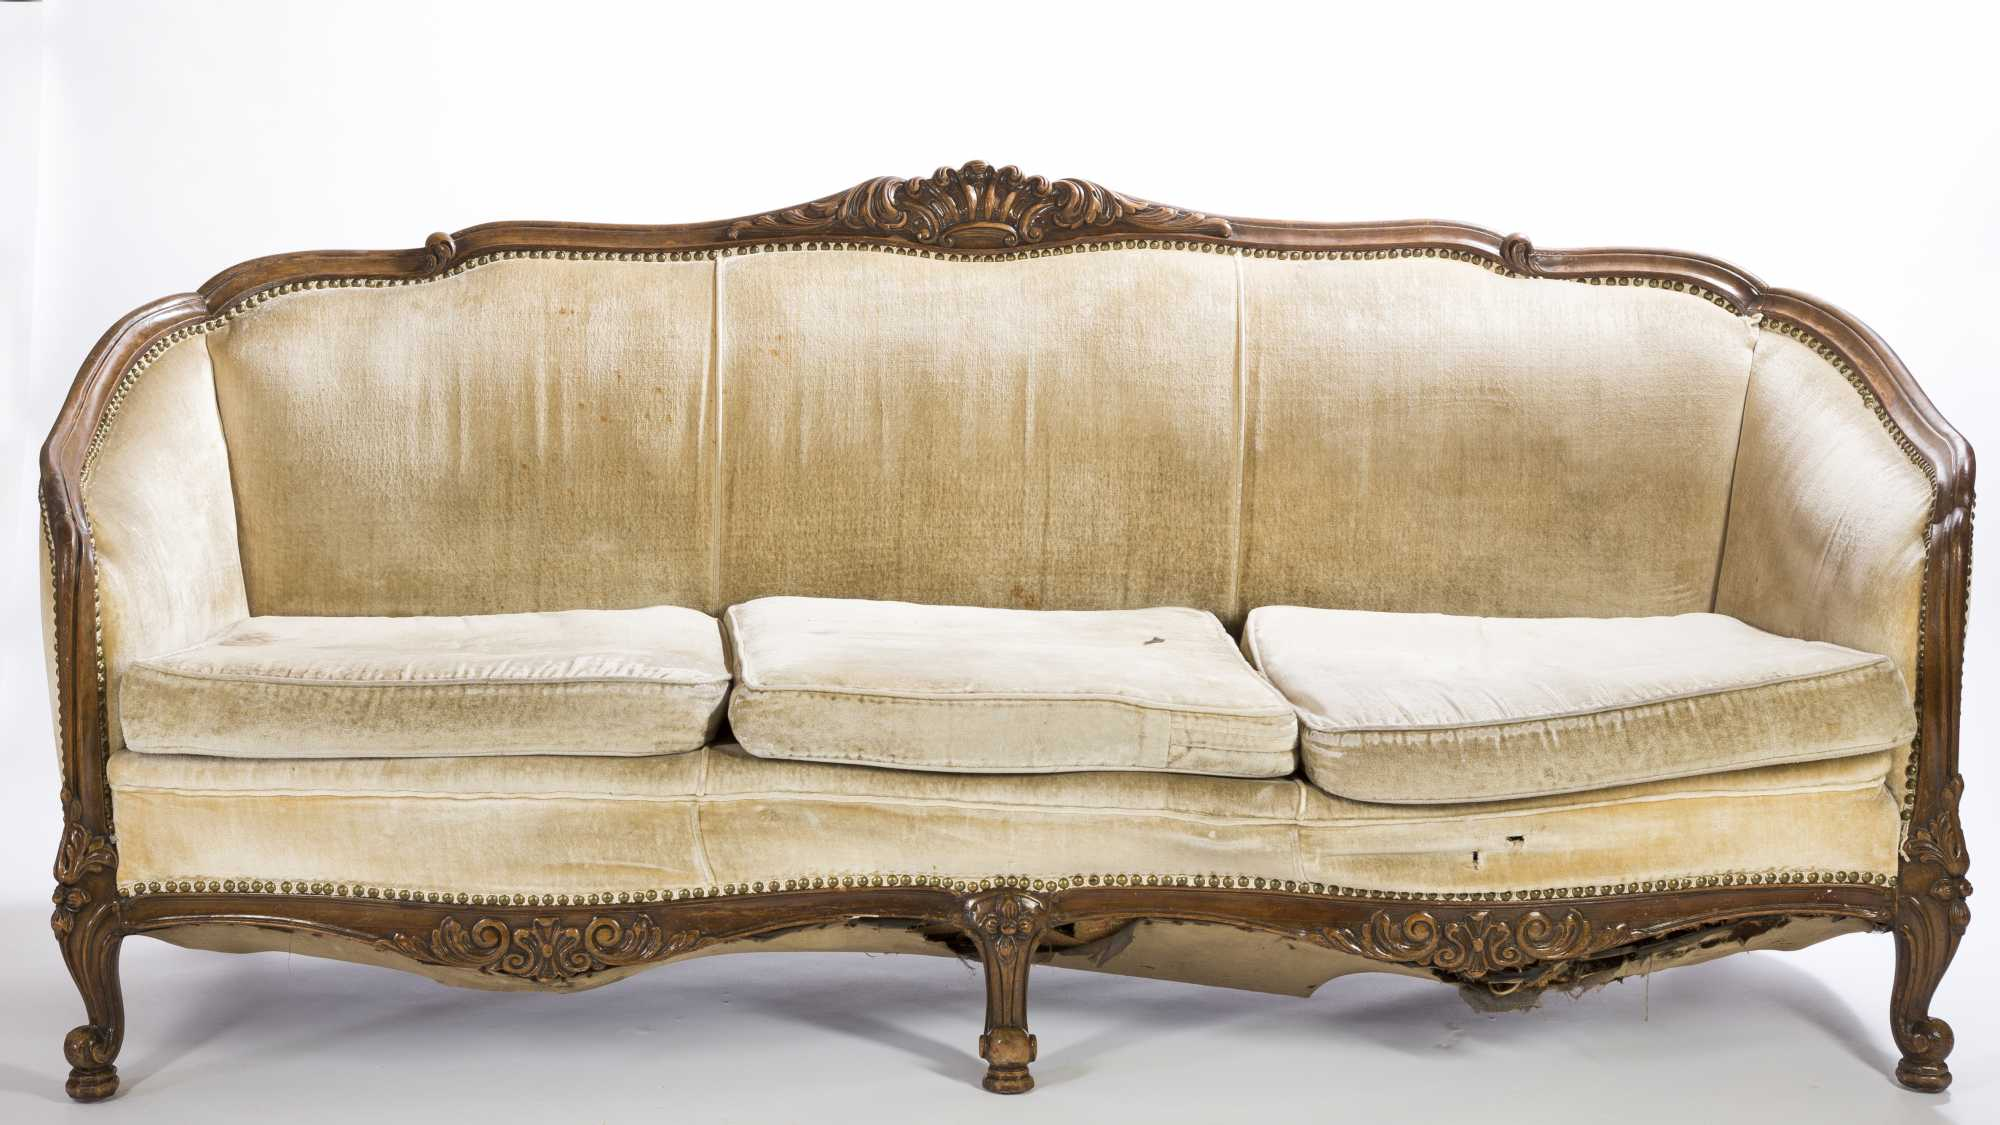 old fashioned looking sofas sofa beds online south africa french style country hymns and